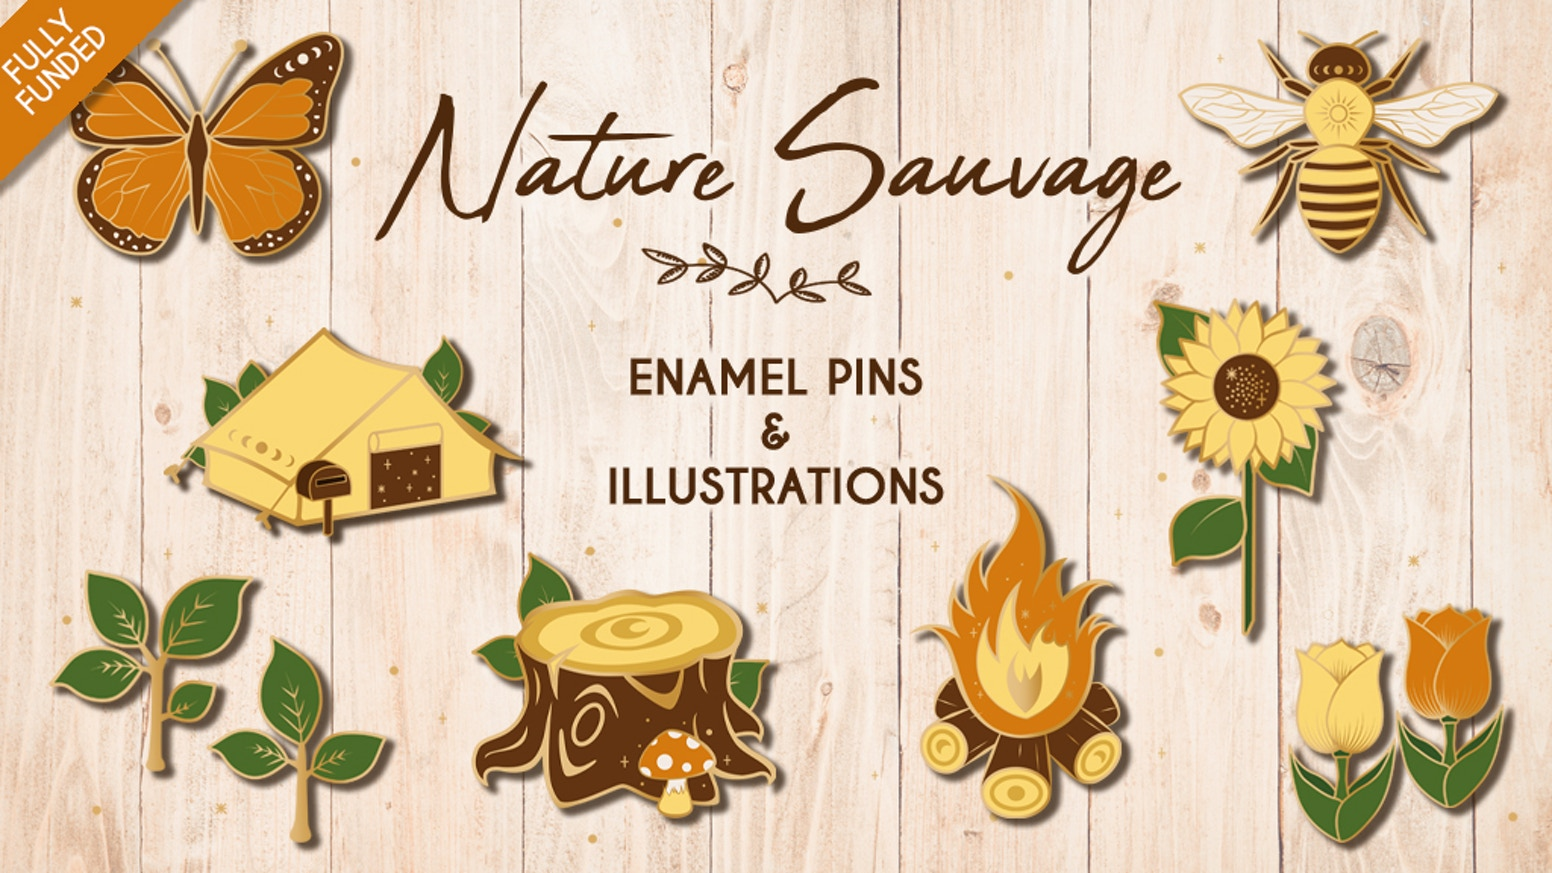 A collection of pins, illustrations, stickers & a tote bag inspired by the Animal Crossing universe and wild nature.